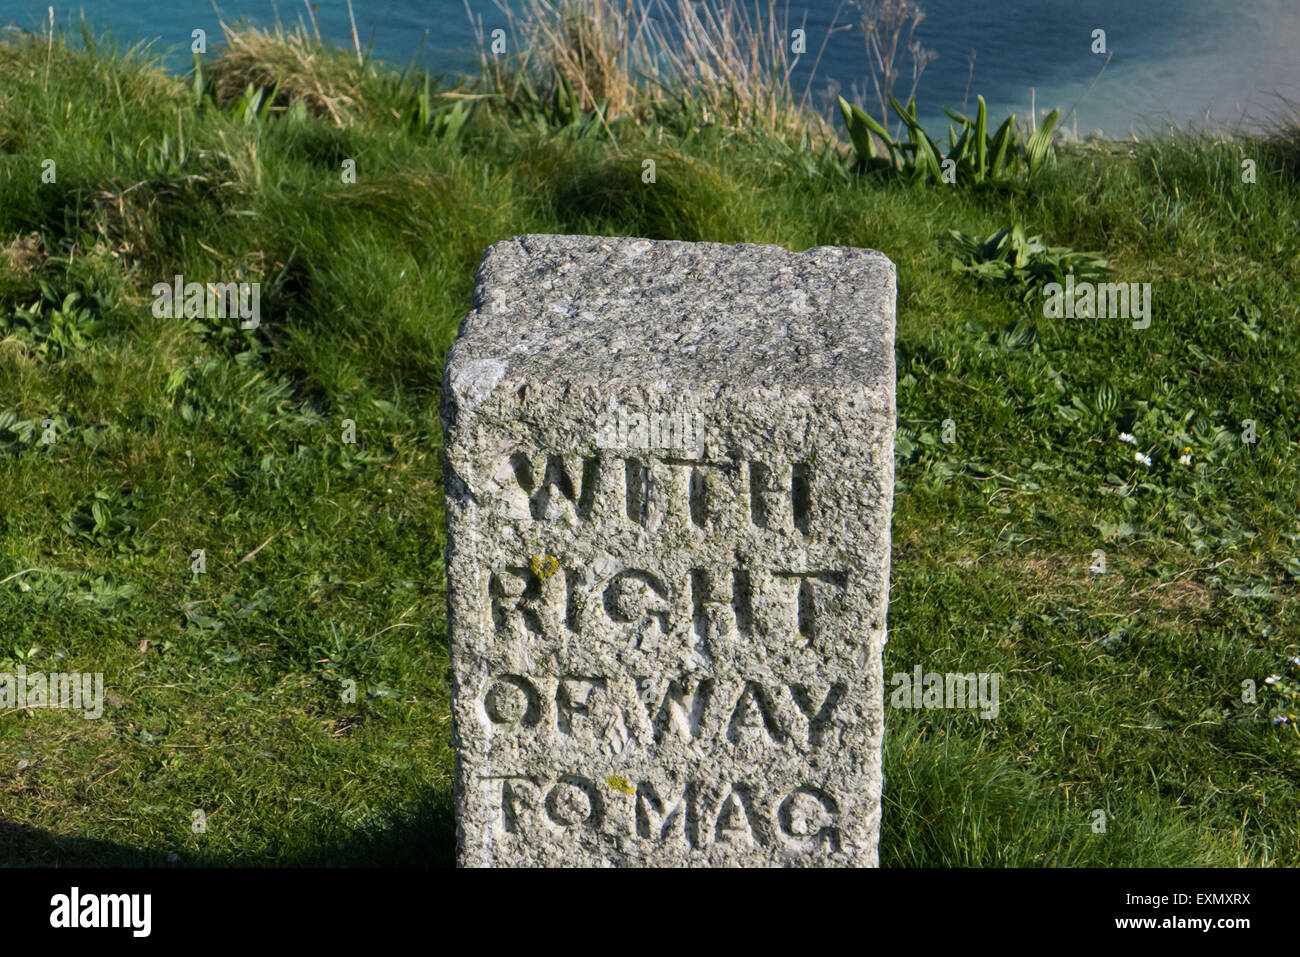 St Ives, Cornwall, England. Right of Way stone marker. Stock Photo